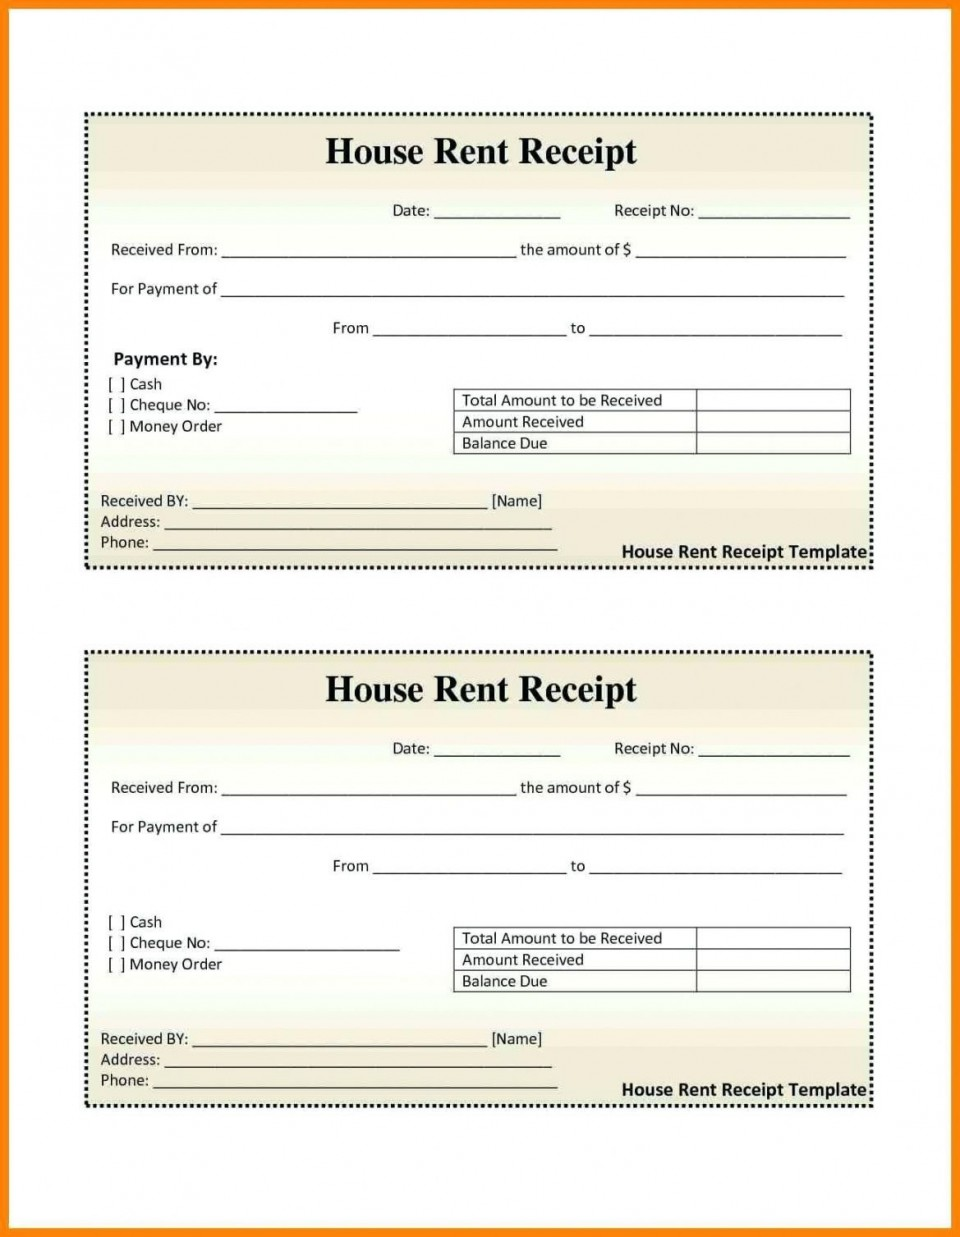 000 Excellent House Rent Receipt Sample Doc Photo  Template India Bill Format Word Document Pdf Download960